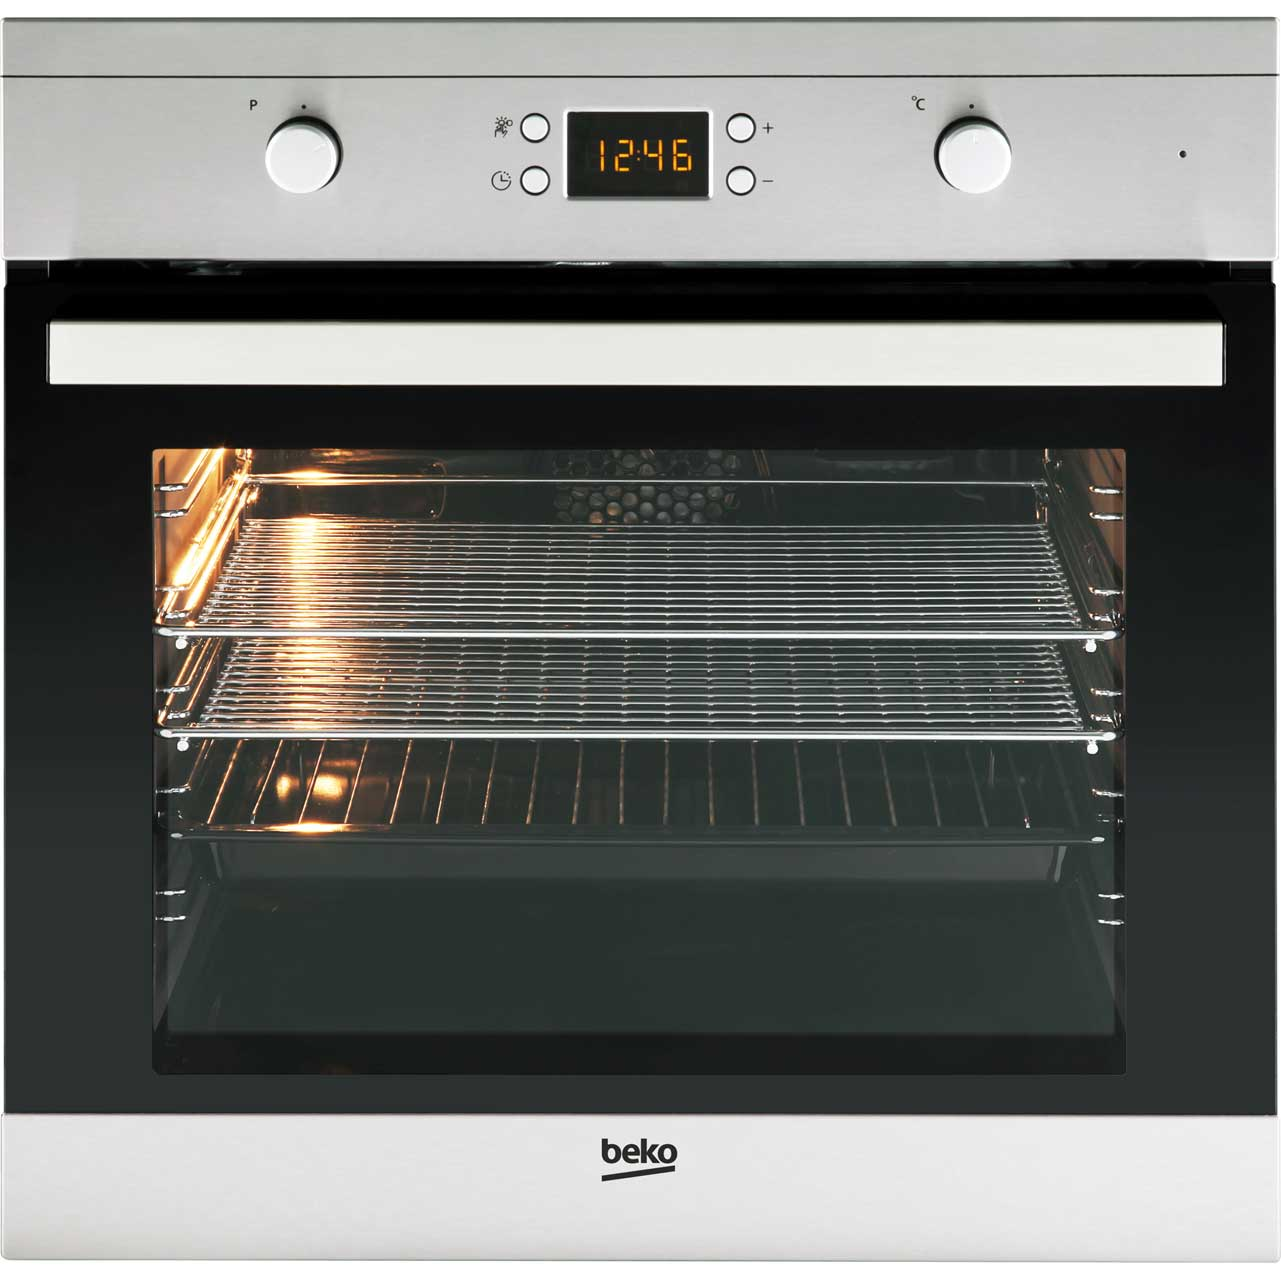 Beko OIF22309X Built In Electric Single Oven - Stainless Steel